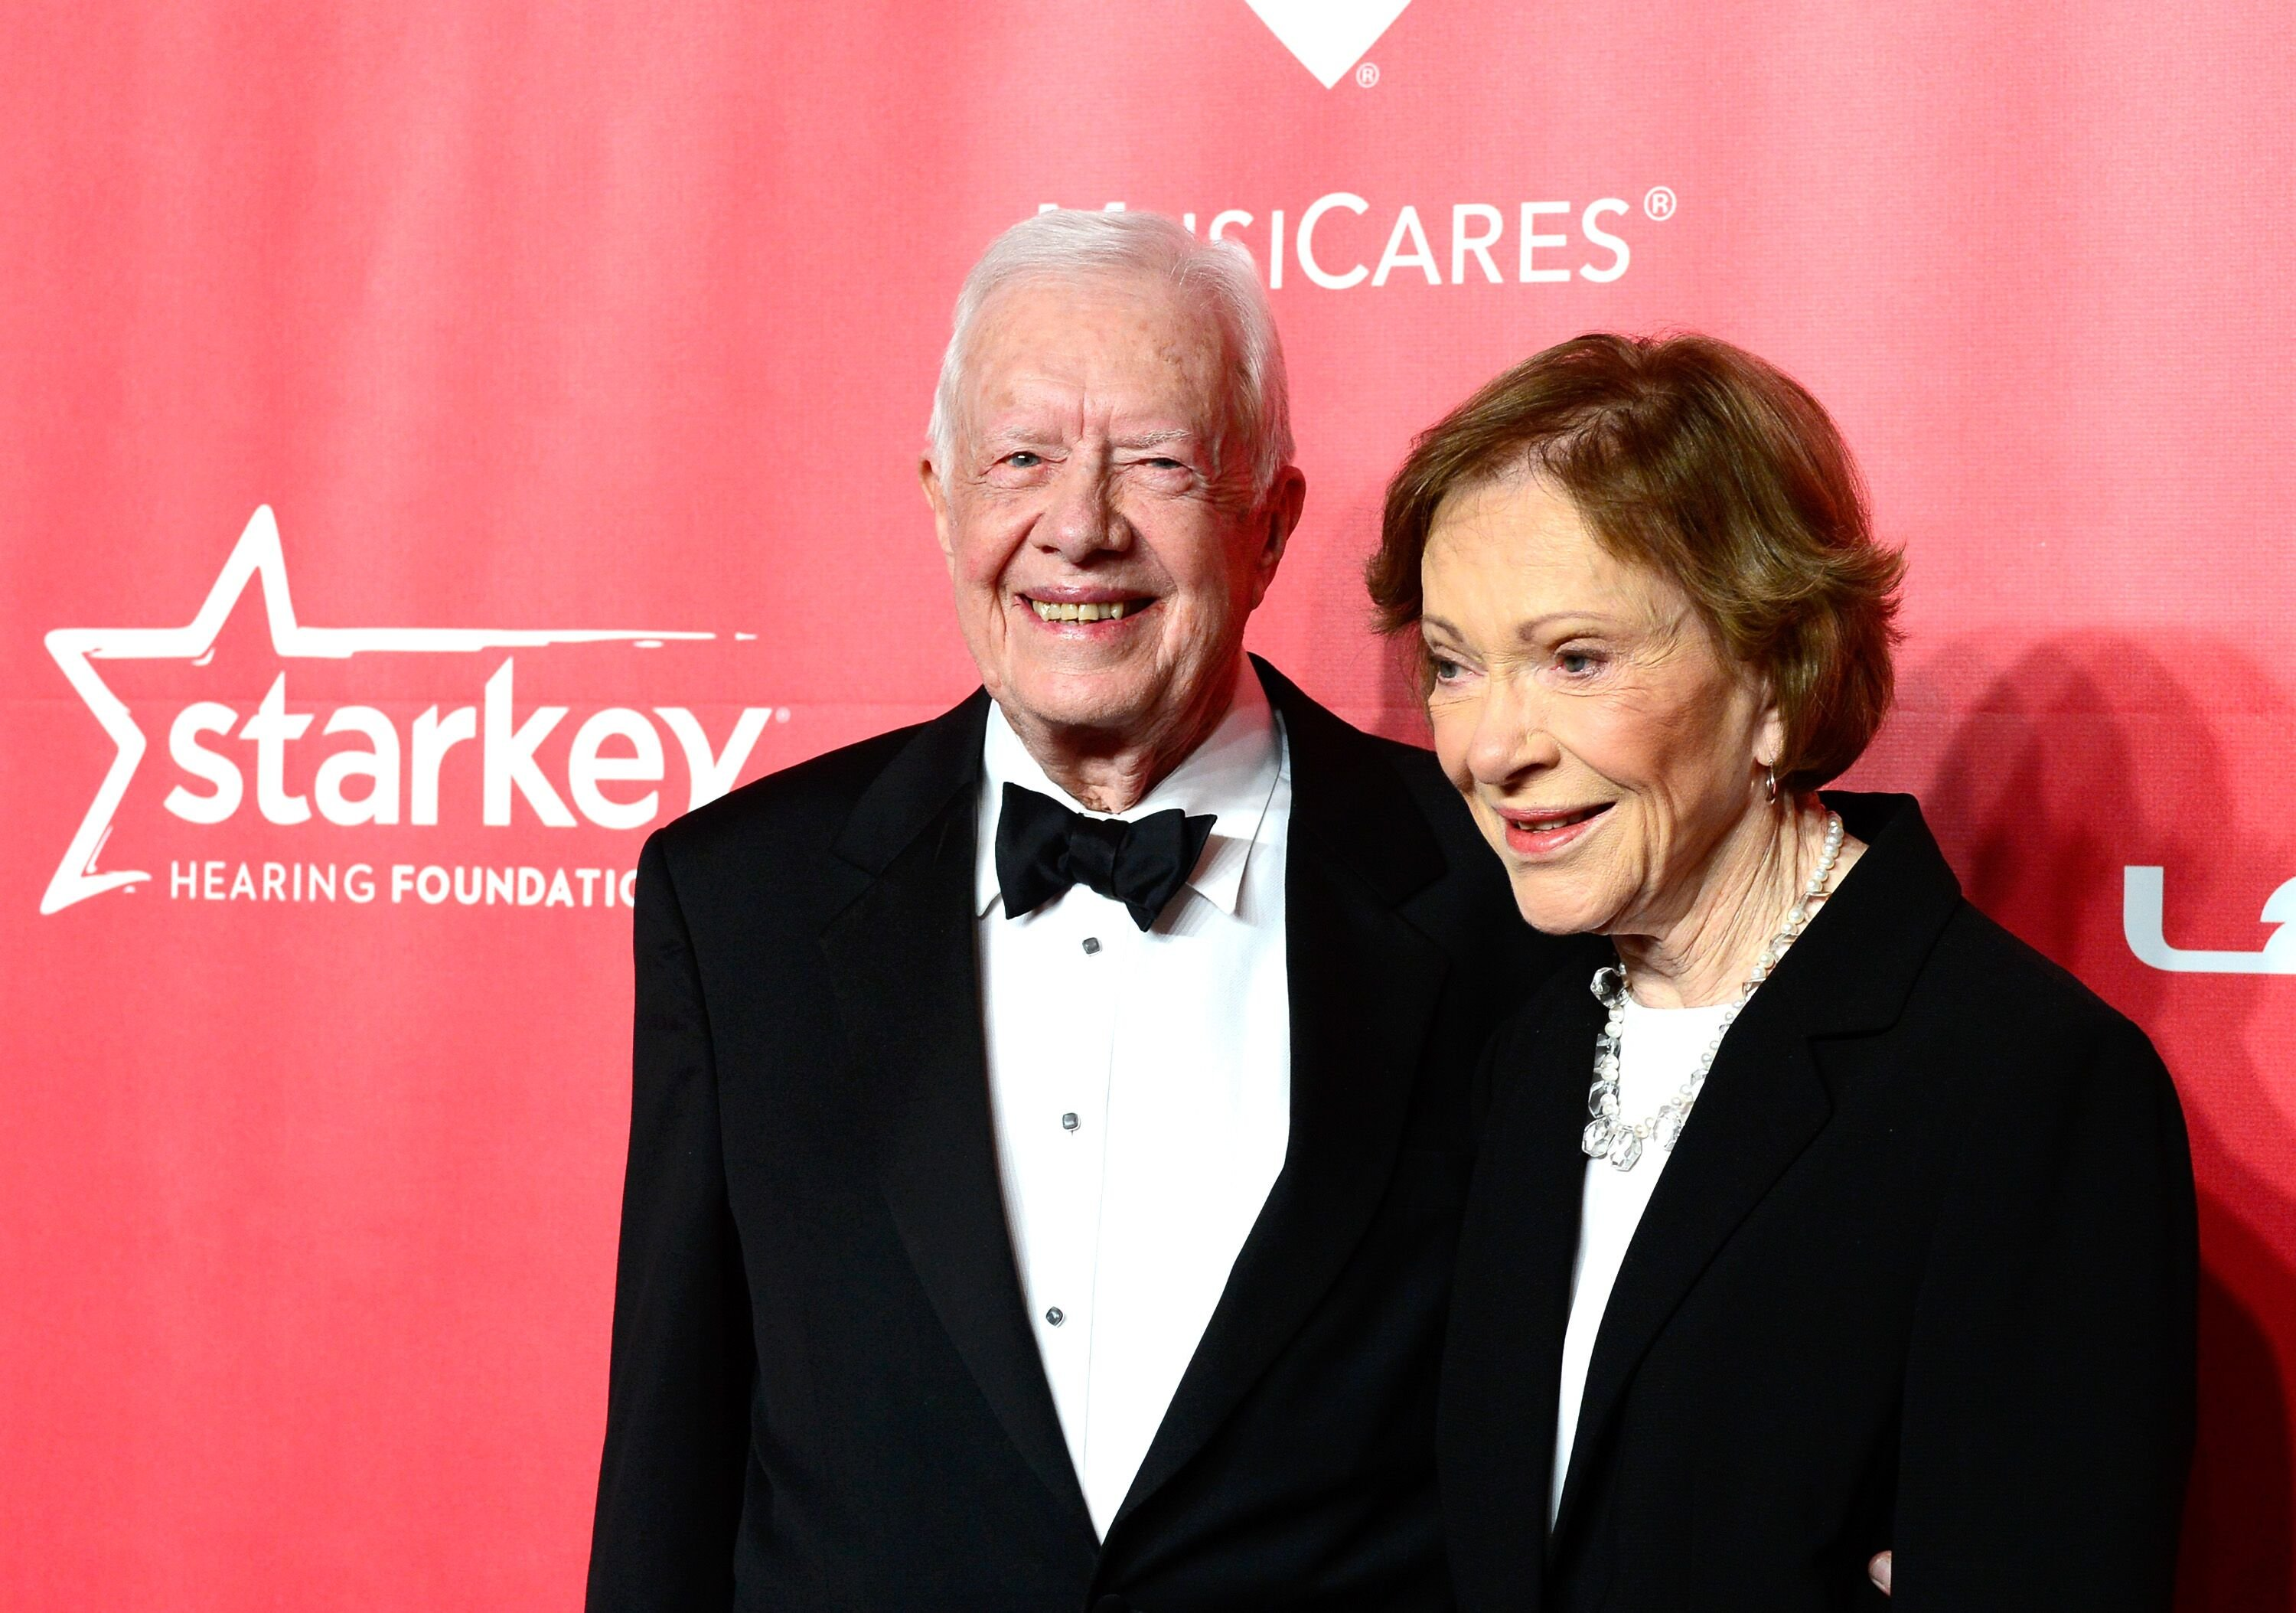 Jimmy and Rosalynn Carter at the 25th anniversary of MusiCares Person Of The Year Gala on February 6, 2015, in California. | Photo: Getty Images